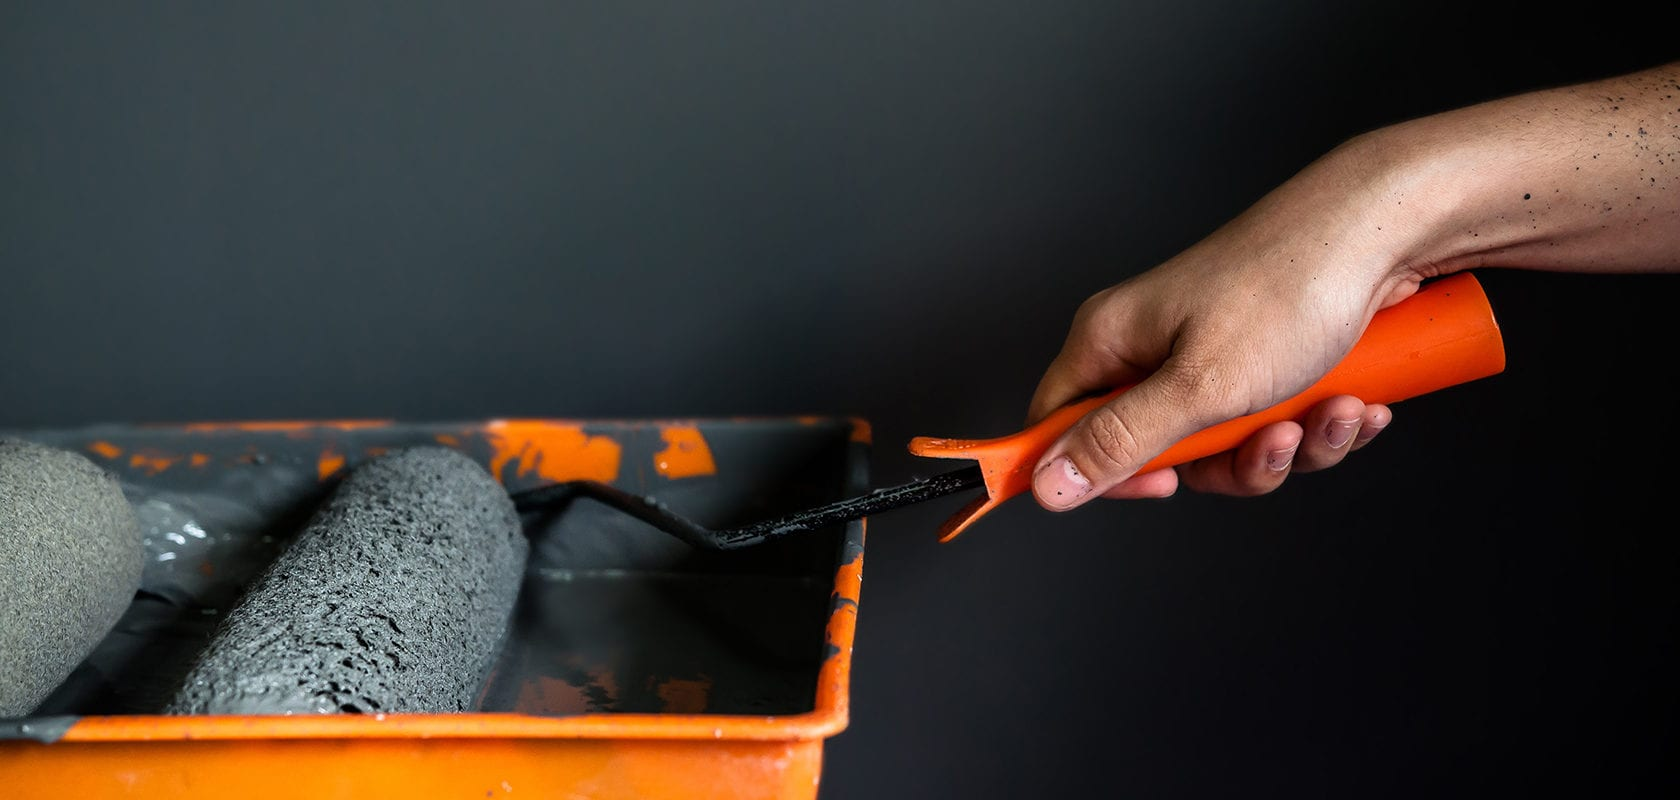 Close up of hand holding paint roller in paint tray, Grey wall background